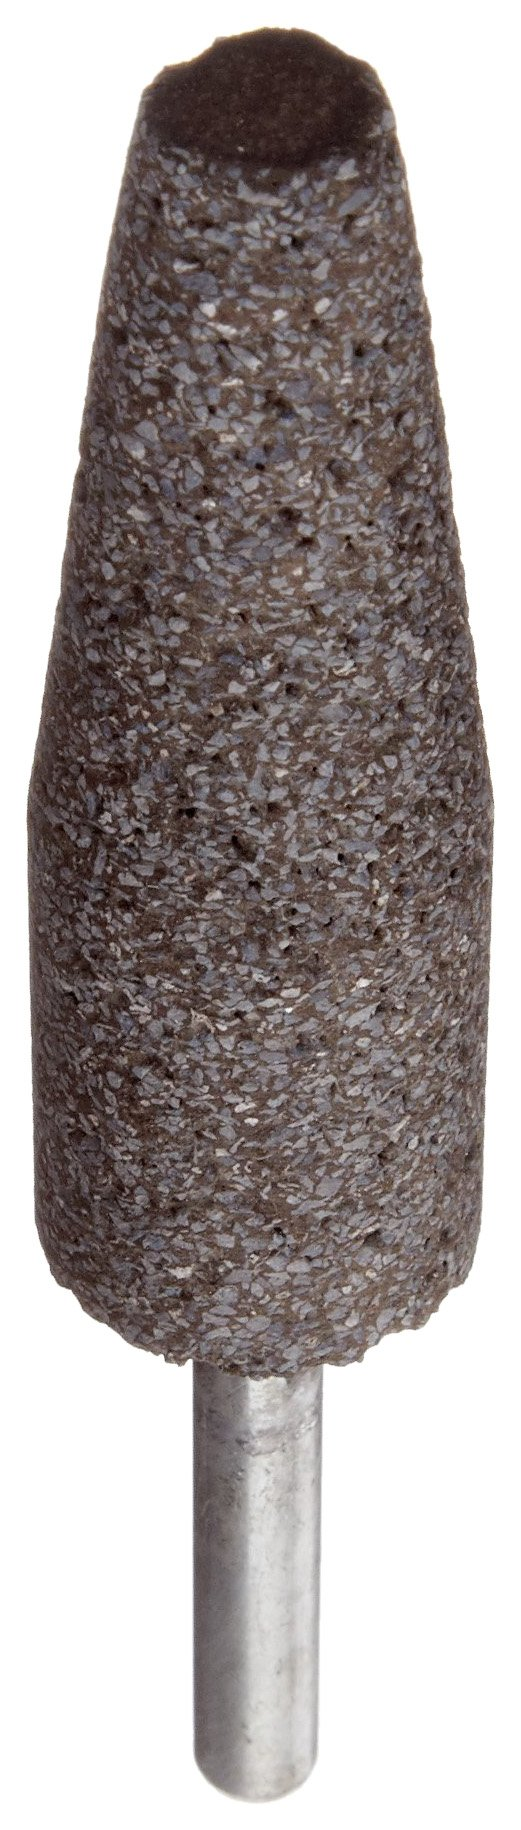 Norton NorZon Resin Bond Abrasive Mounted Point, Zirconia Alumina, A1 Shape, 1/4'' Spindle Diameter, 3/4'' Diameter x 2-1/2'' Thickness, Grit 24 (Pack of 5)